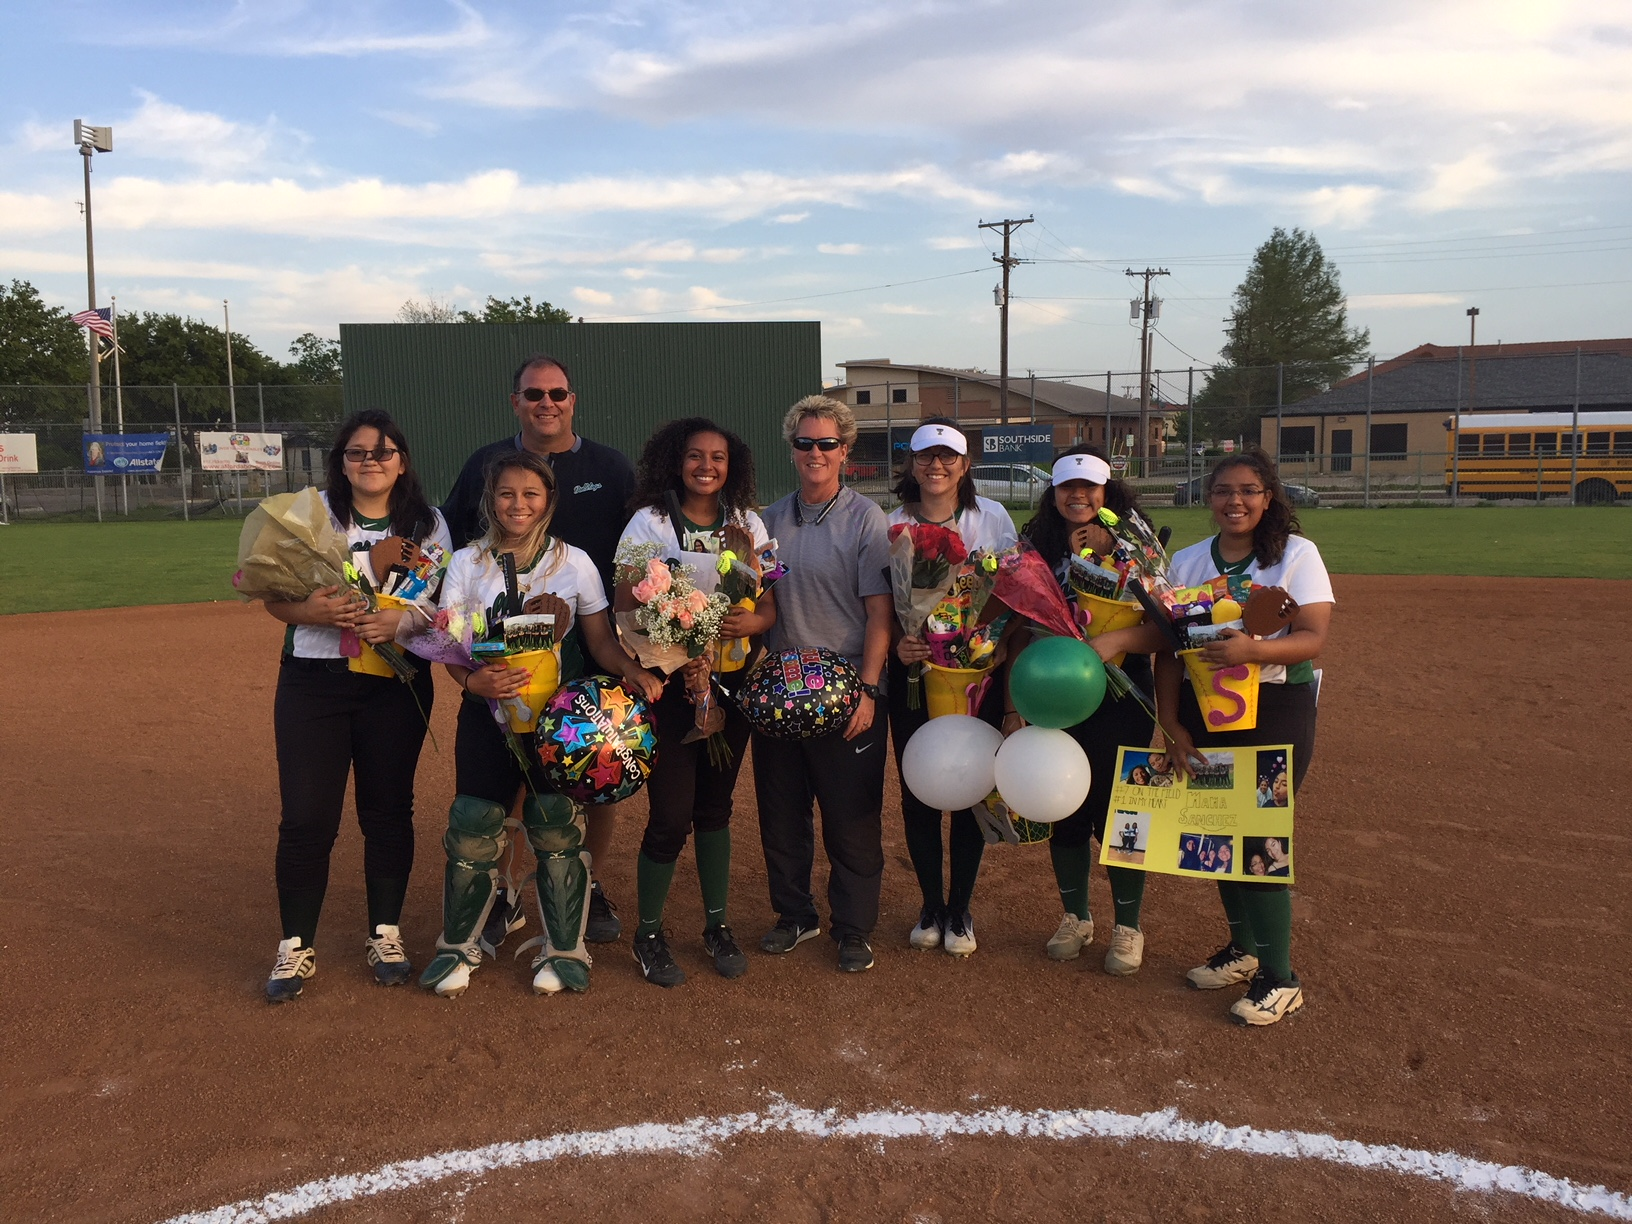 Lady Bulldogs celebrate Senior Night with a victory over OD Wyatt, one win away from Play-offs!